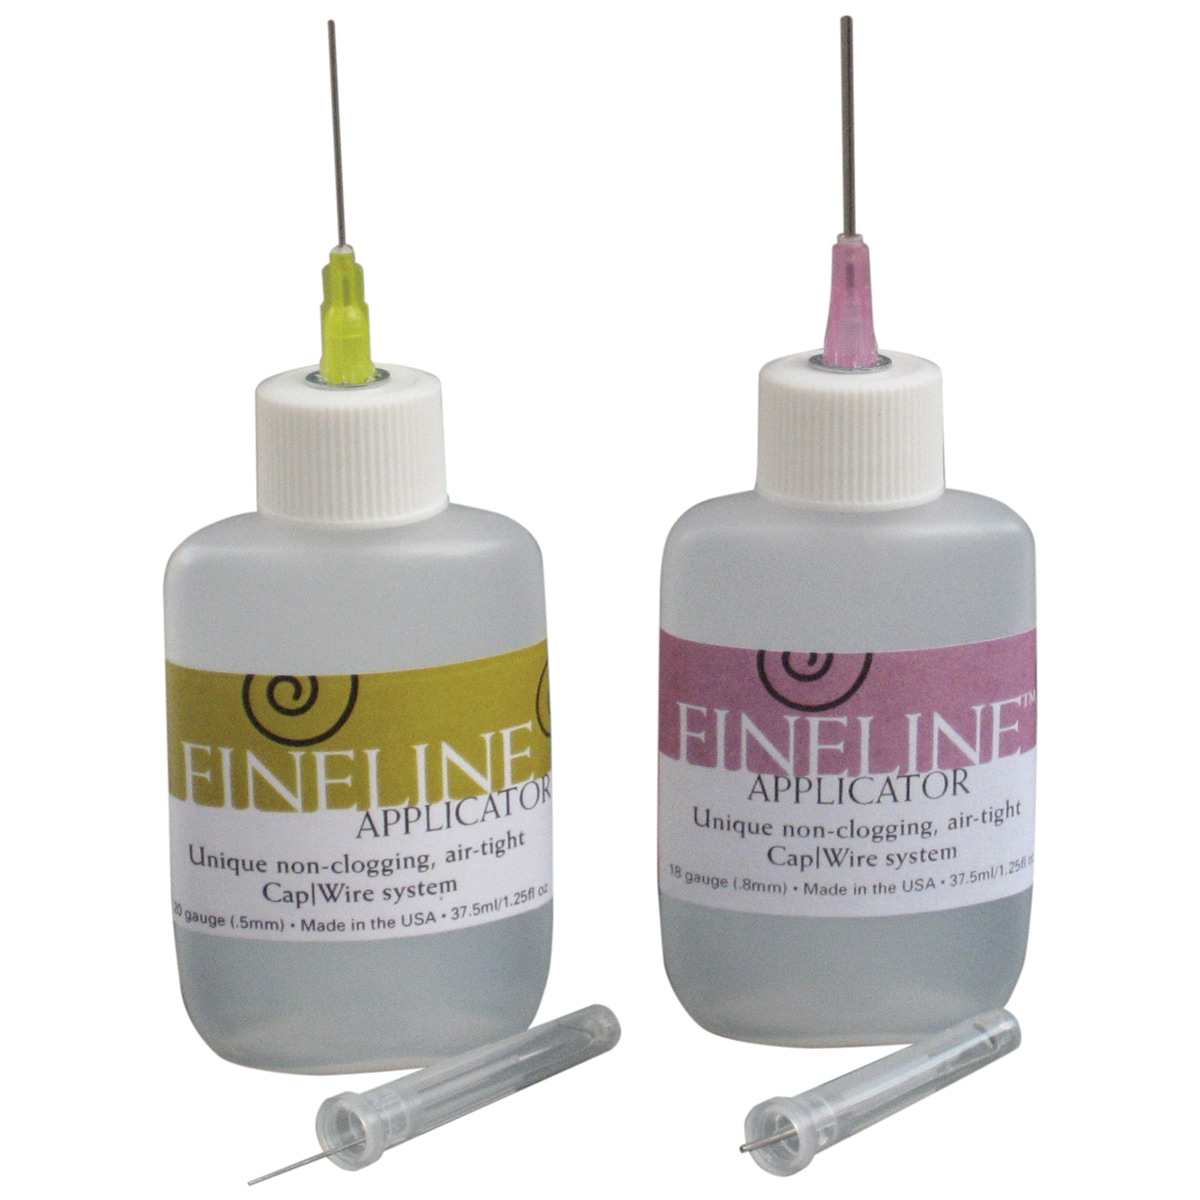 20 Gauge Fineline Applicator 2/Pkg-1.25oz Refillable Bottle